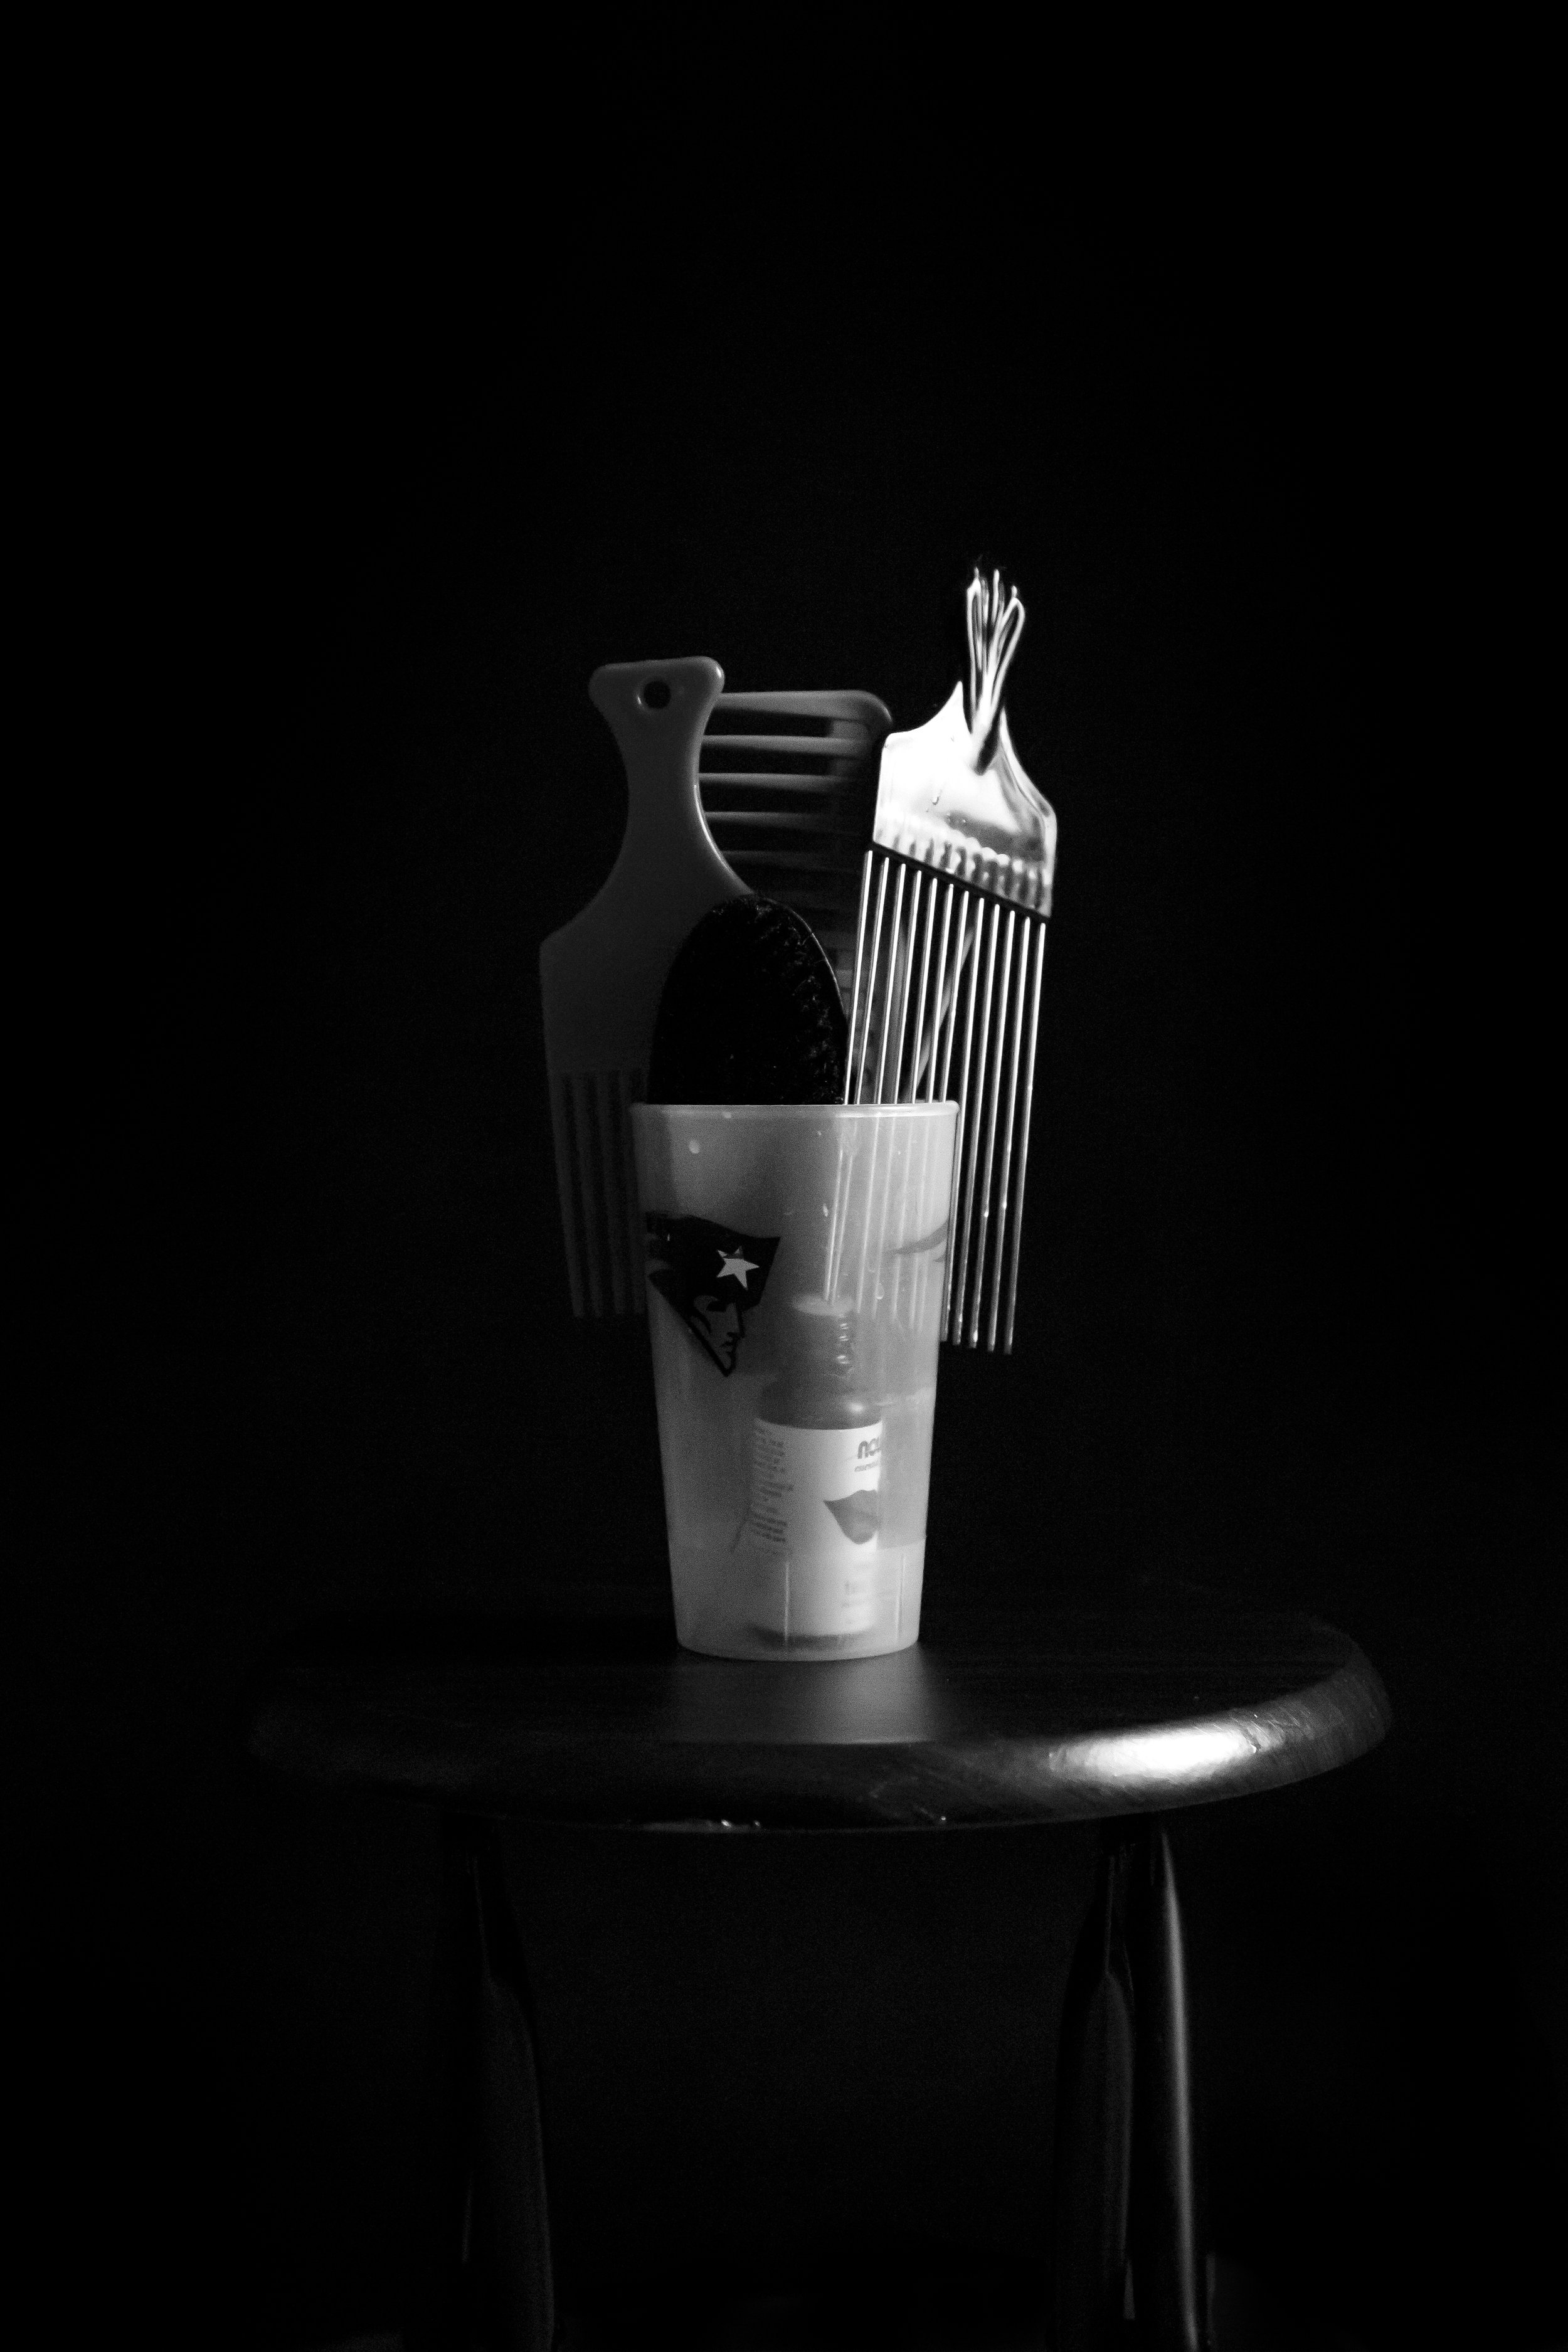 BHM_0006_Combs In Cup.jpg